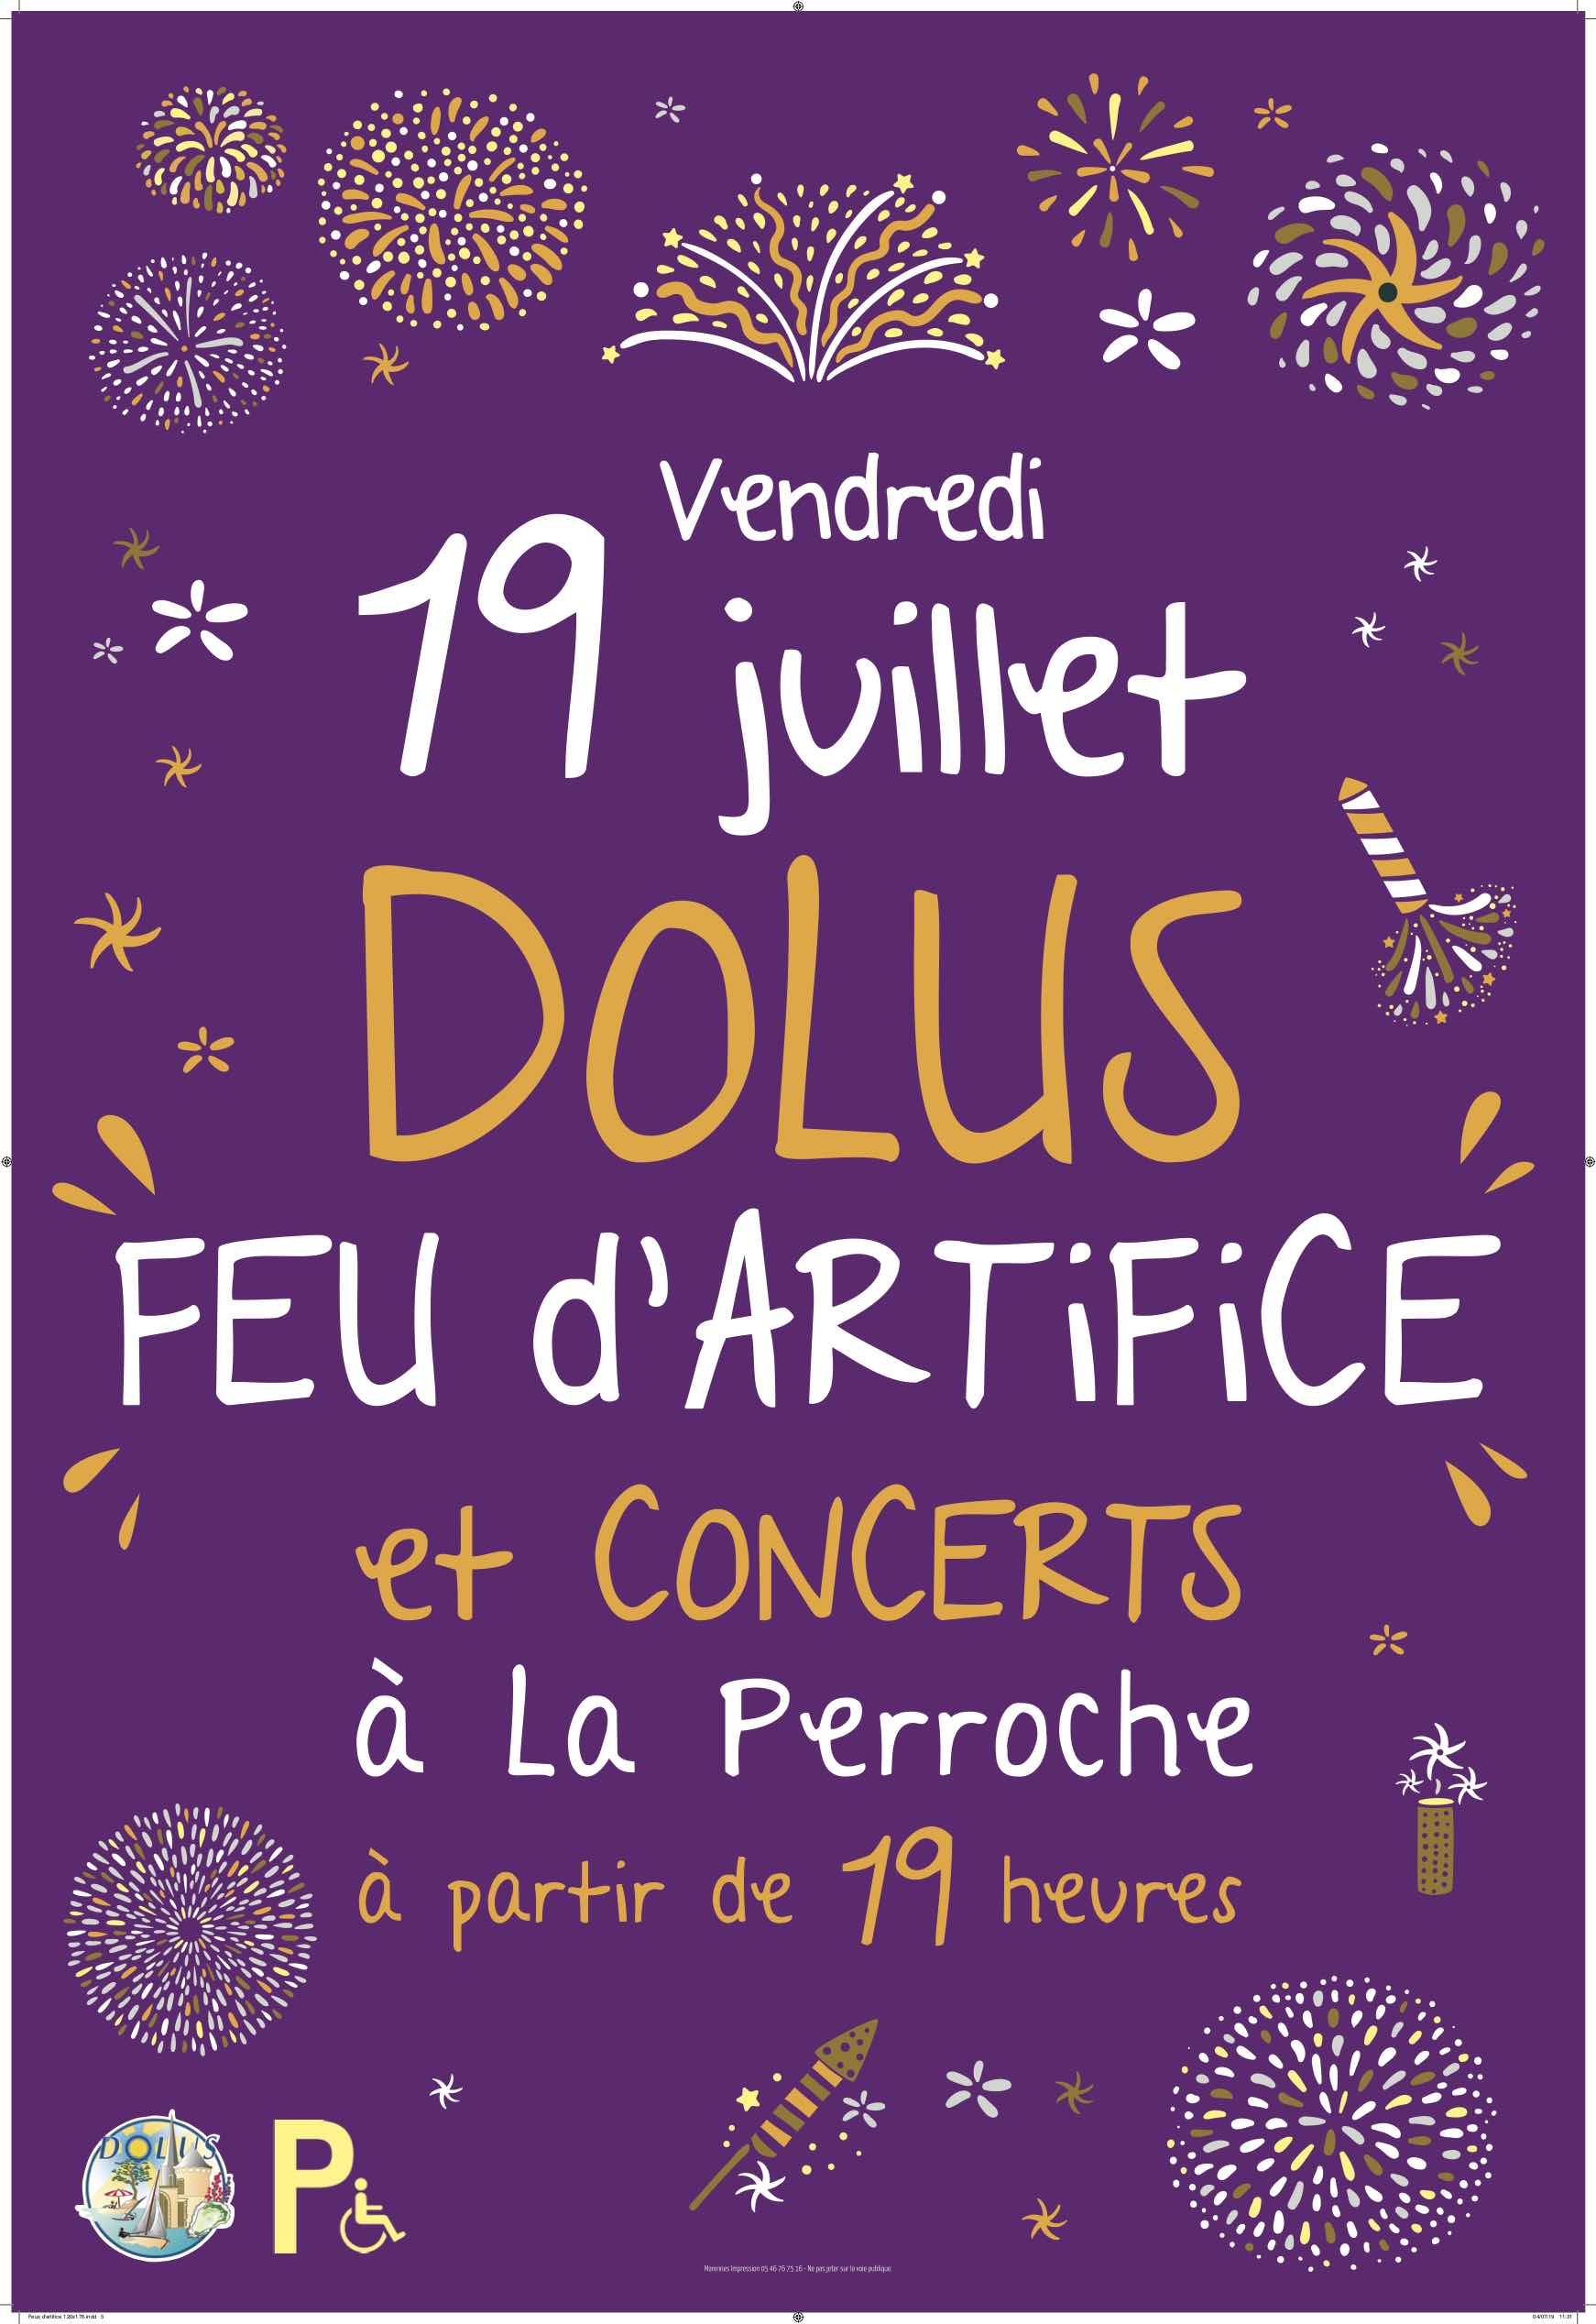 Feu d'artifice, concerts